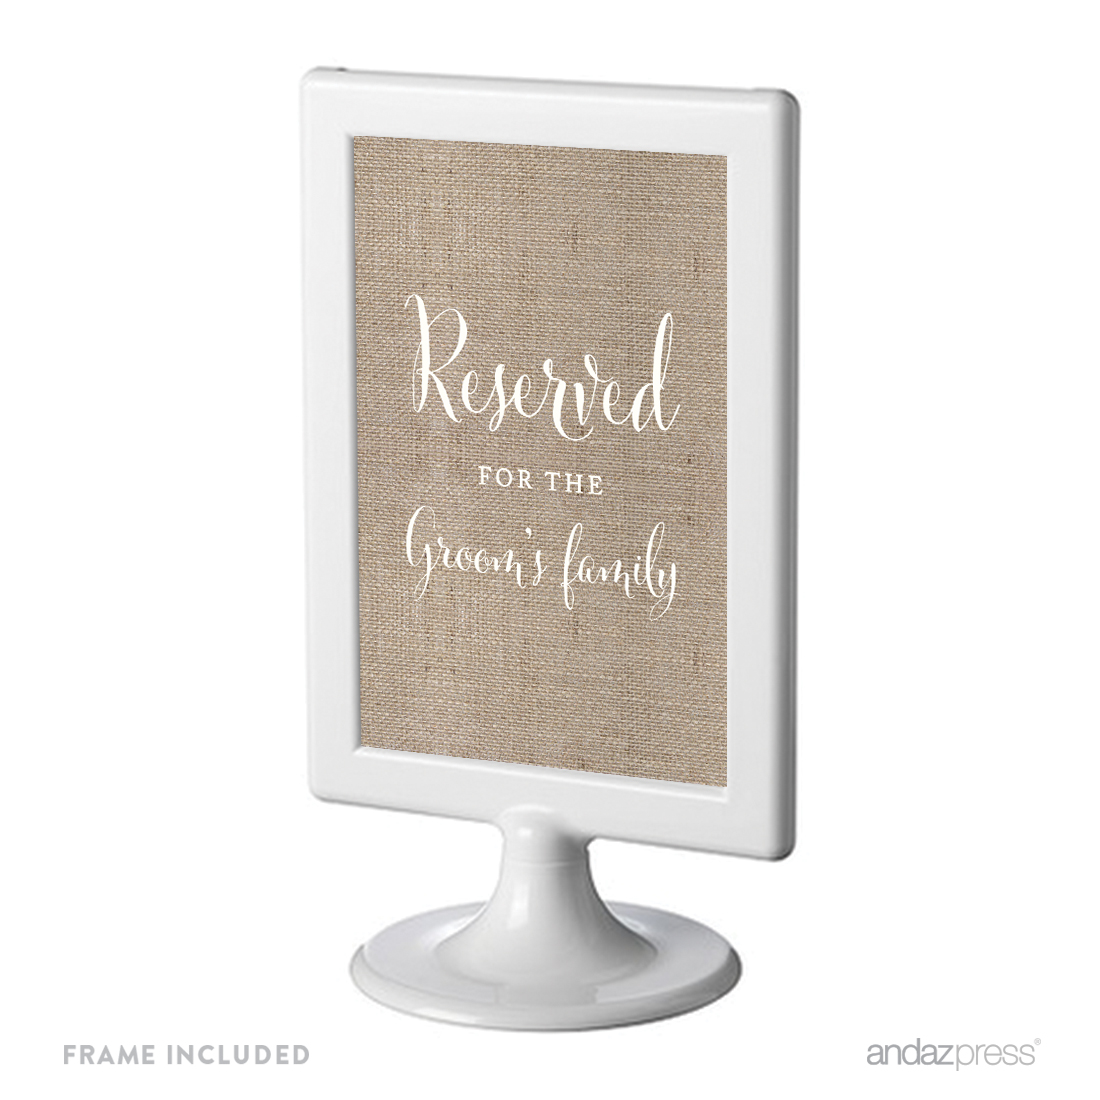 Reserved For The Groom's Family Framed Burlap Wedding Party Signs